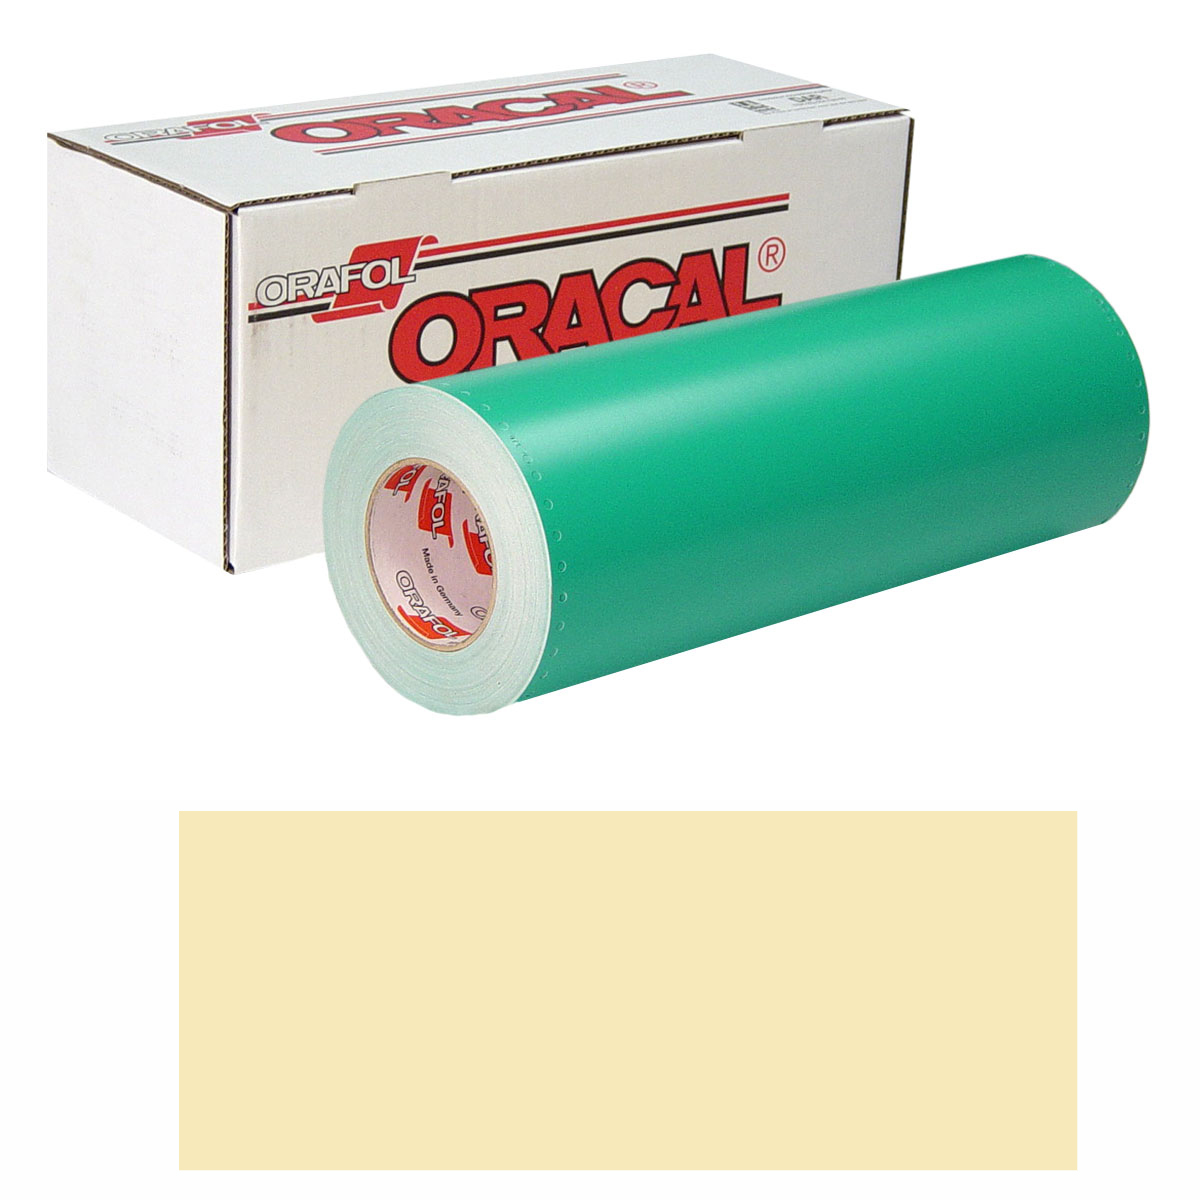 ORACAL 8500 Unp 24In X 50Yd 805 Ivory